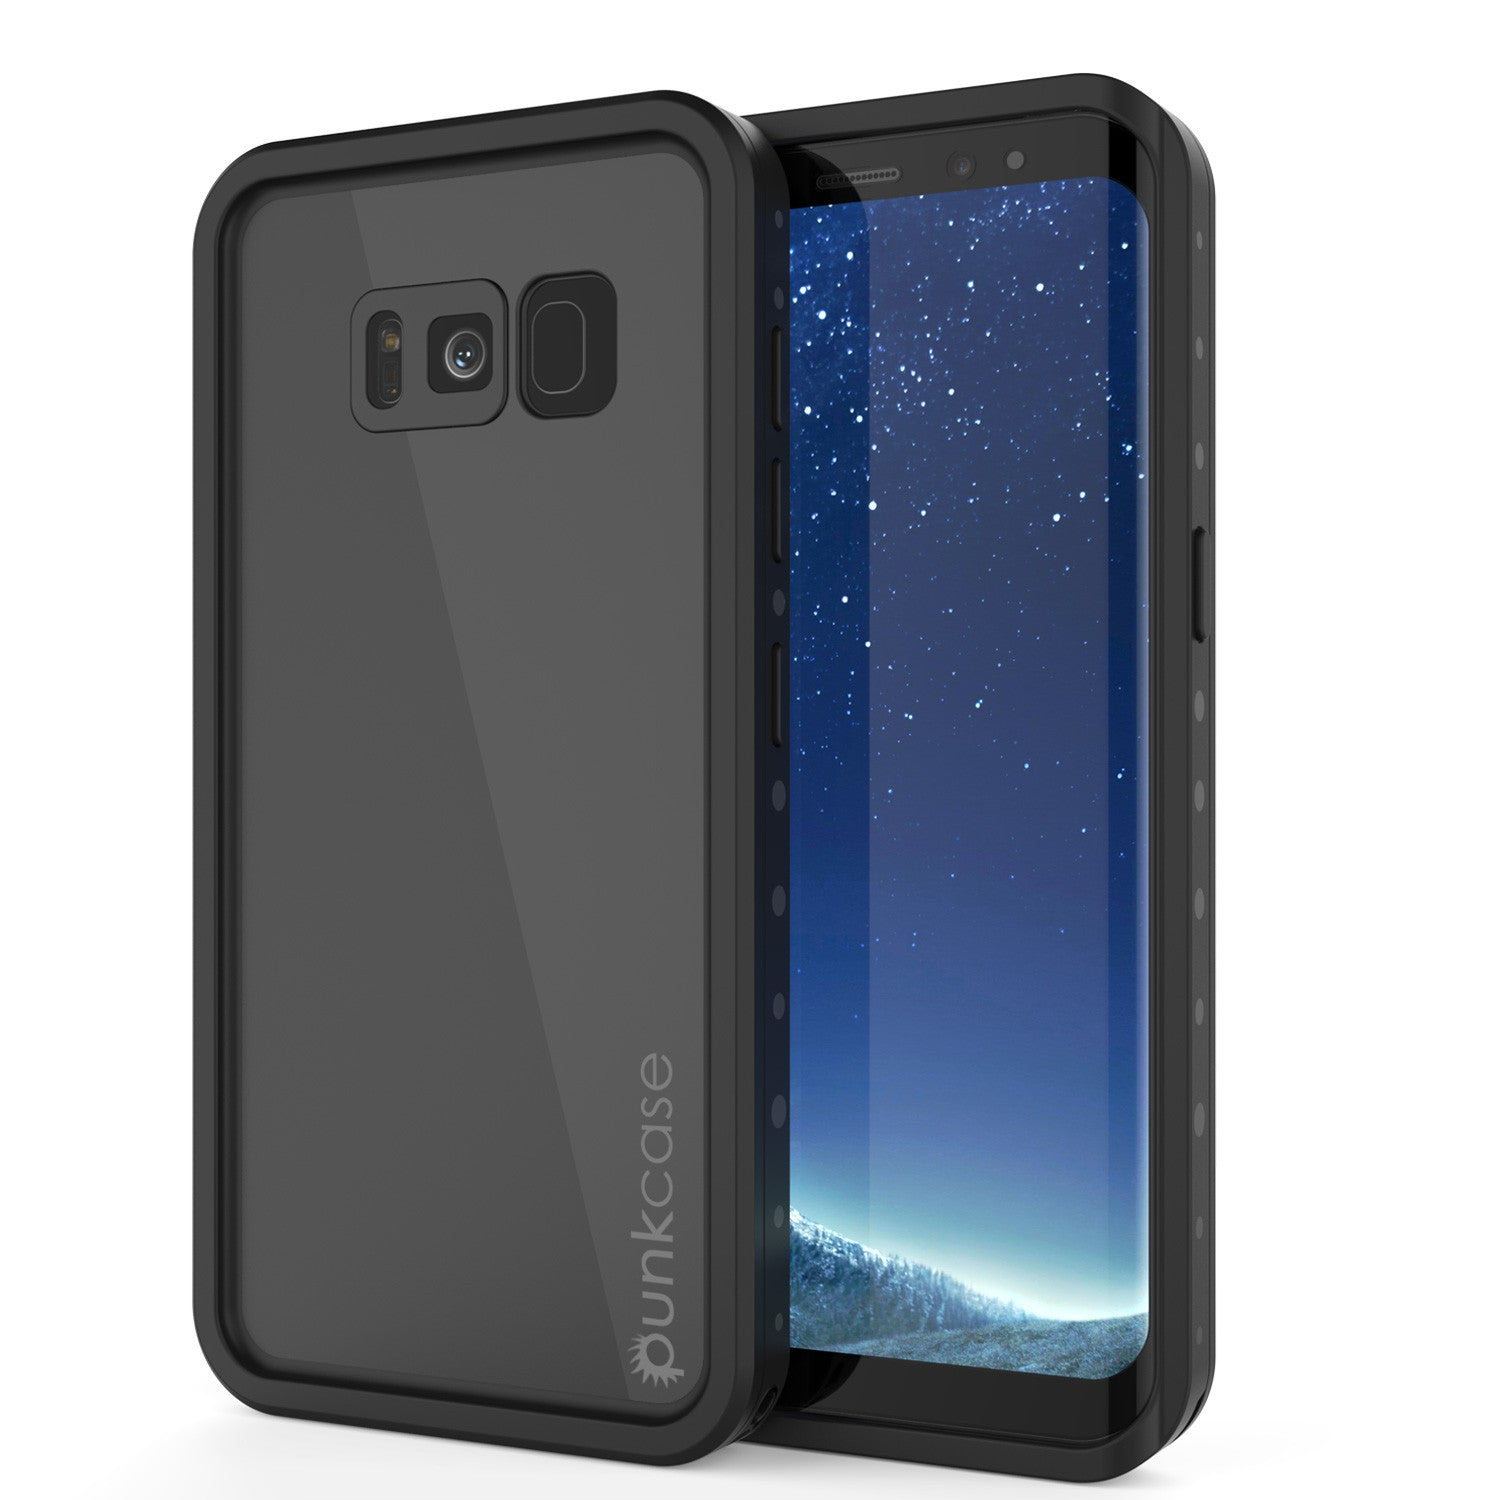 Galaxy S8 Plus Waterproof Case PunkCase StudStar Black Thin 6.6ft Underwater IP68 Shock/Snow Proof